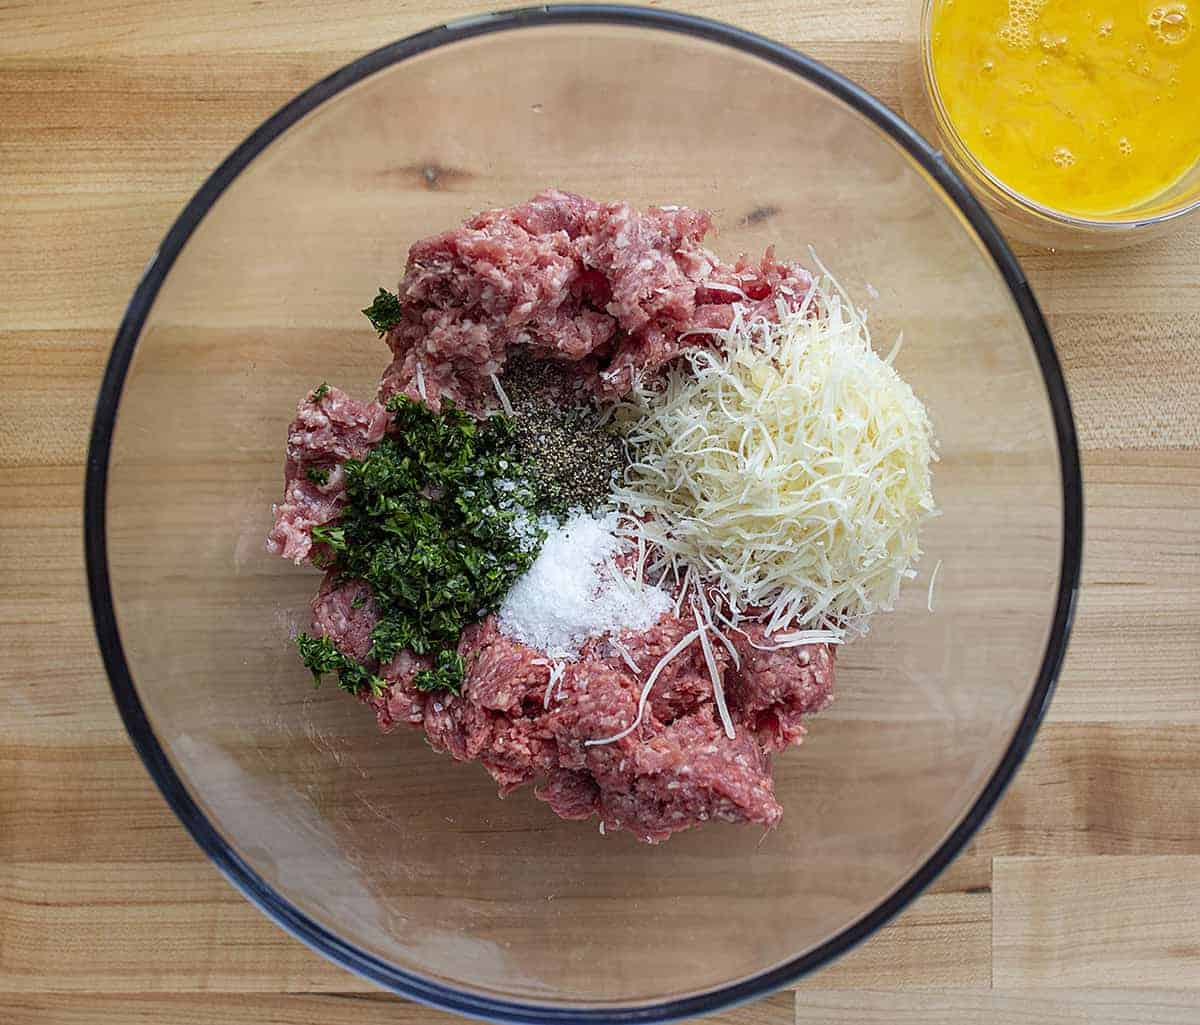 Raw Ingredients for Meatballs from Overhead